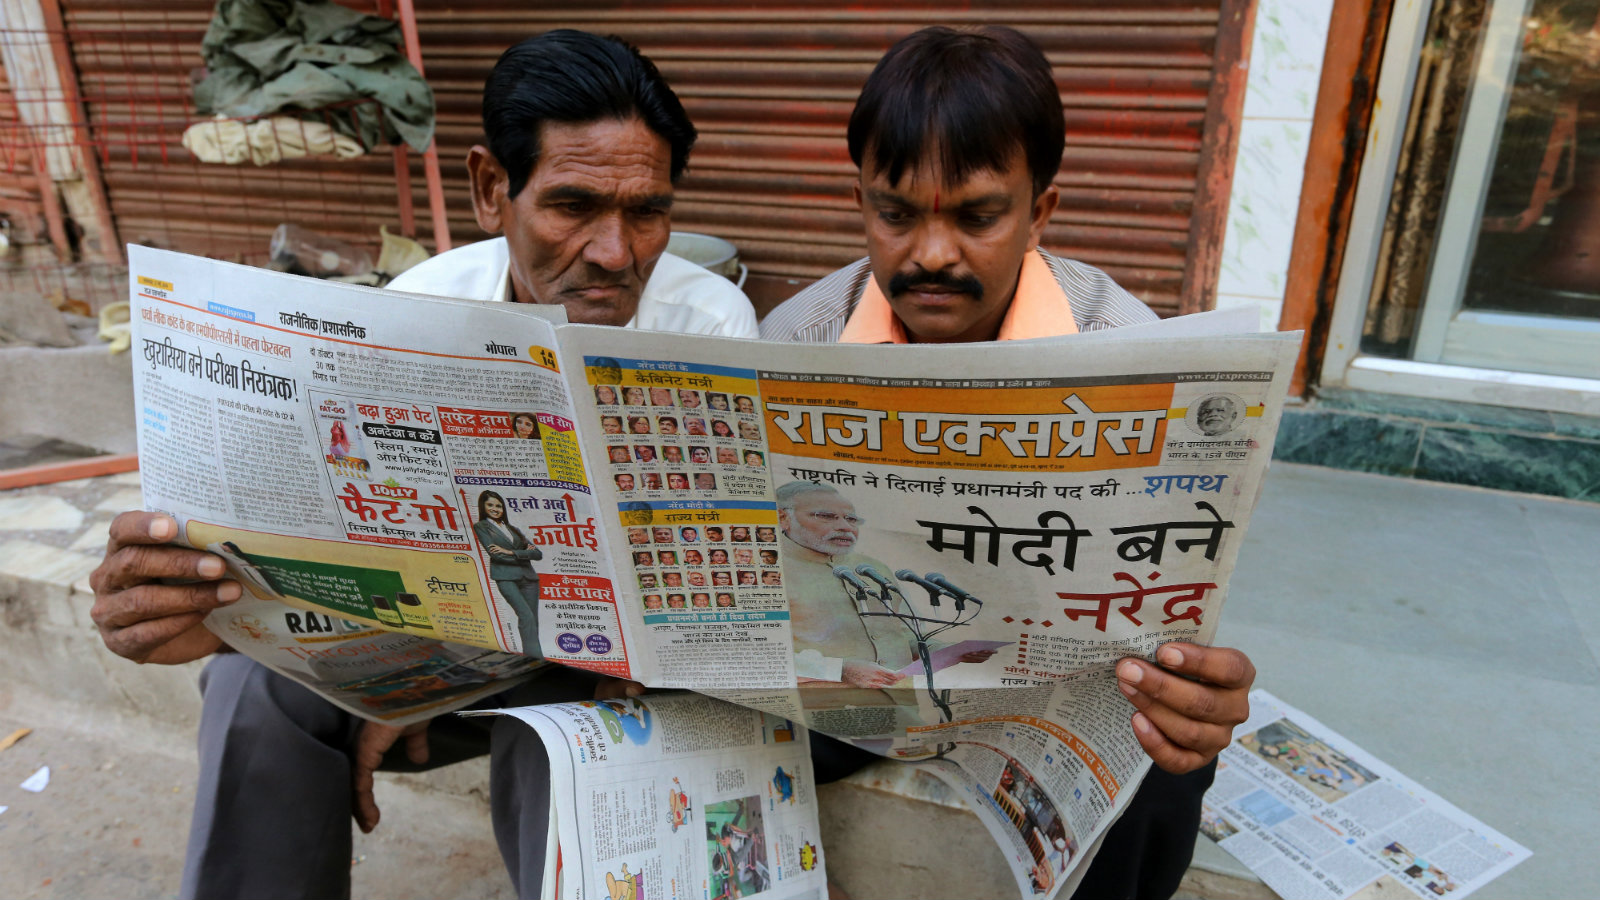 Indian men reads a Hindi newspaper with the headlines of Narendra Modi swearing-in as Prime Minister of India, in Bhopal, India on 27 May,2014.Narendra Modi was sworn in as India's 15th prime minister on 26 May 2014 in a ceremony attended by leaders of neighbouring countries including Pakistan and Afghanistan.